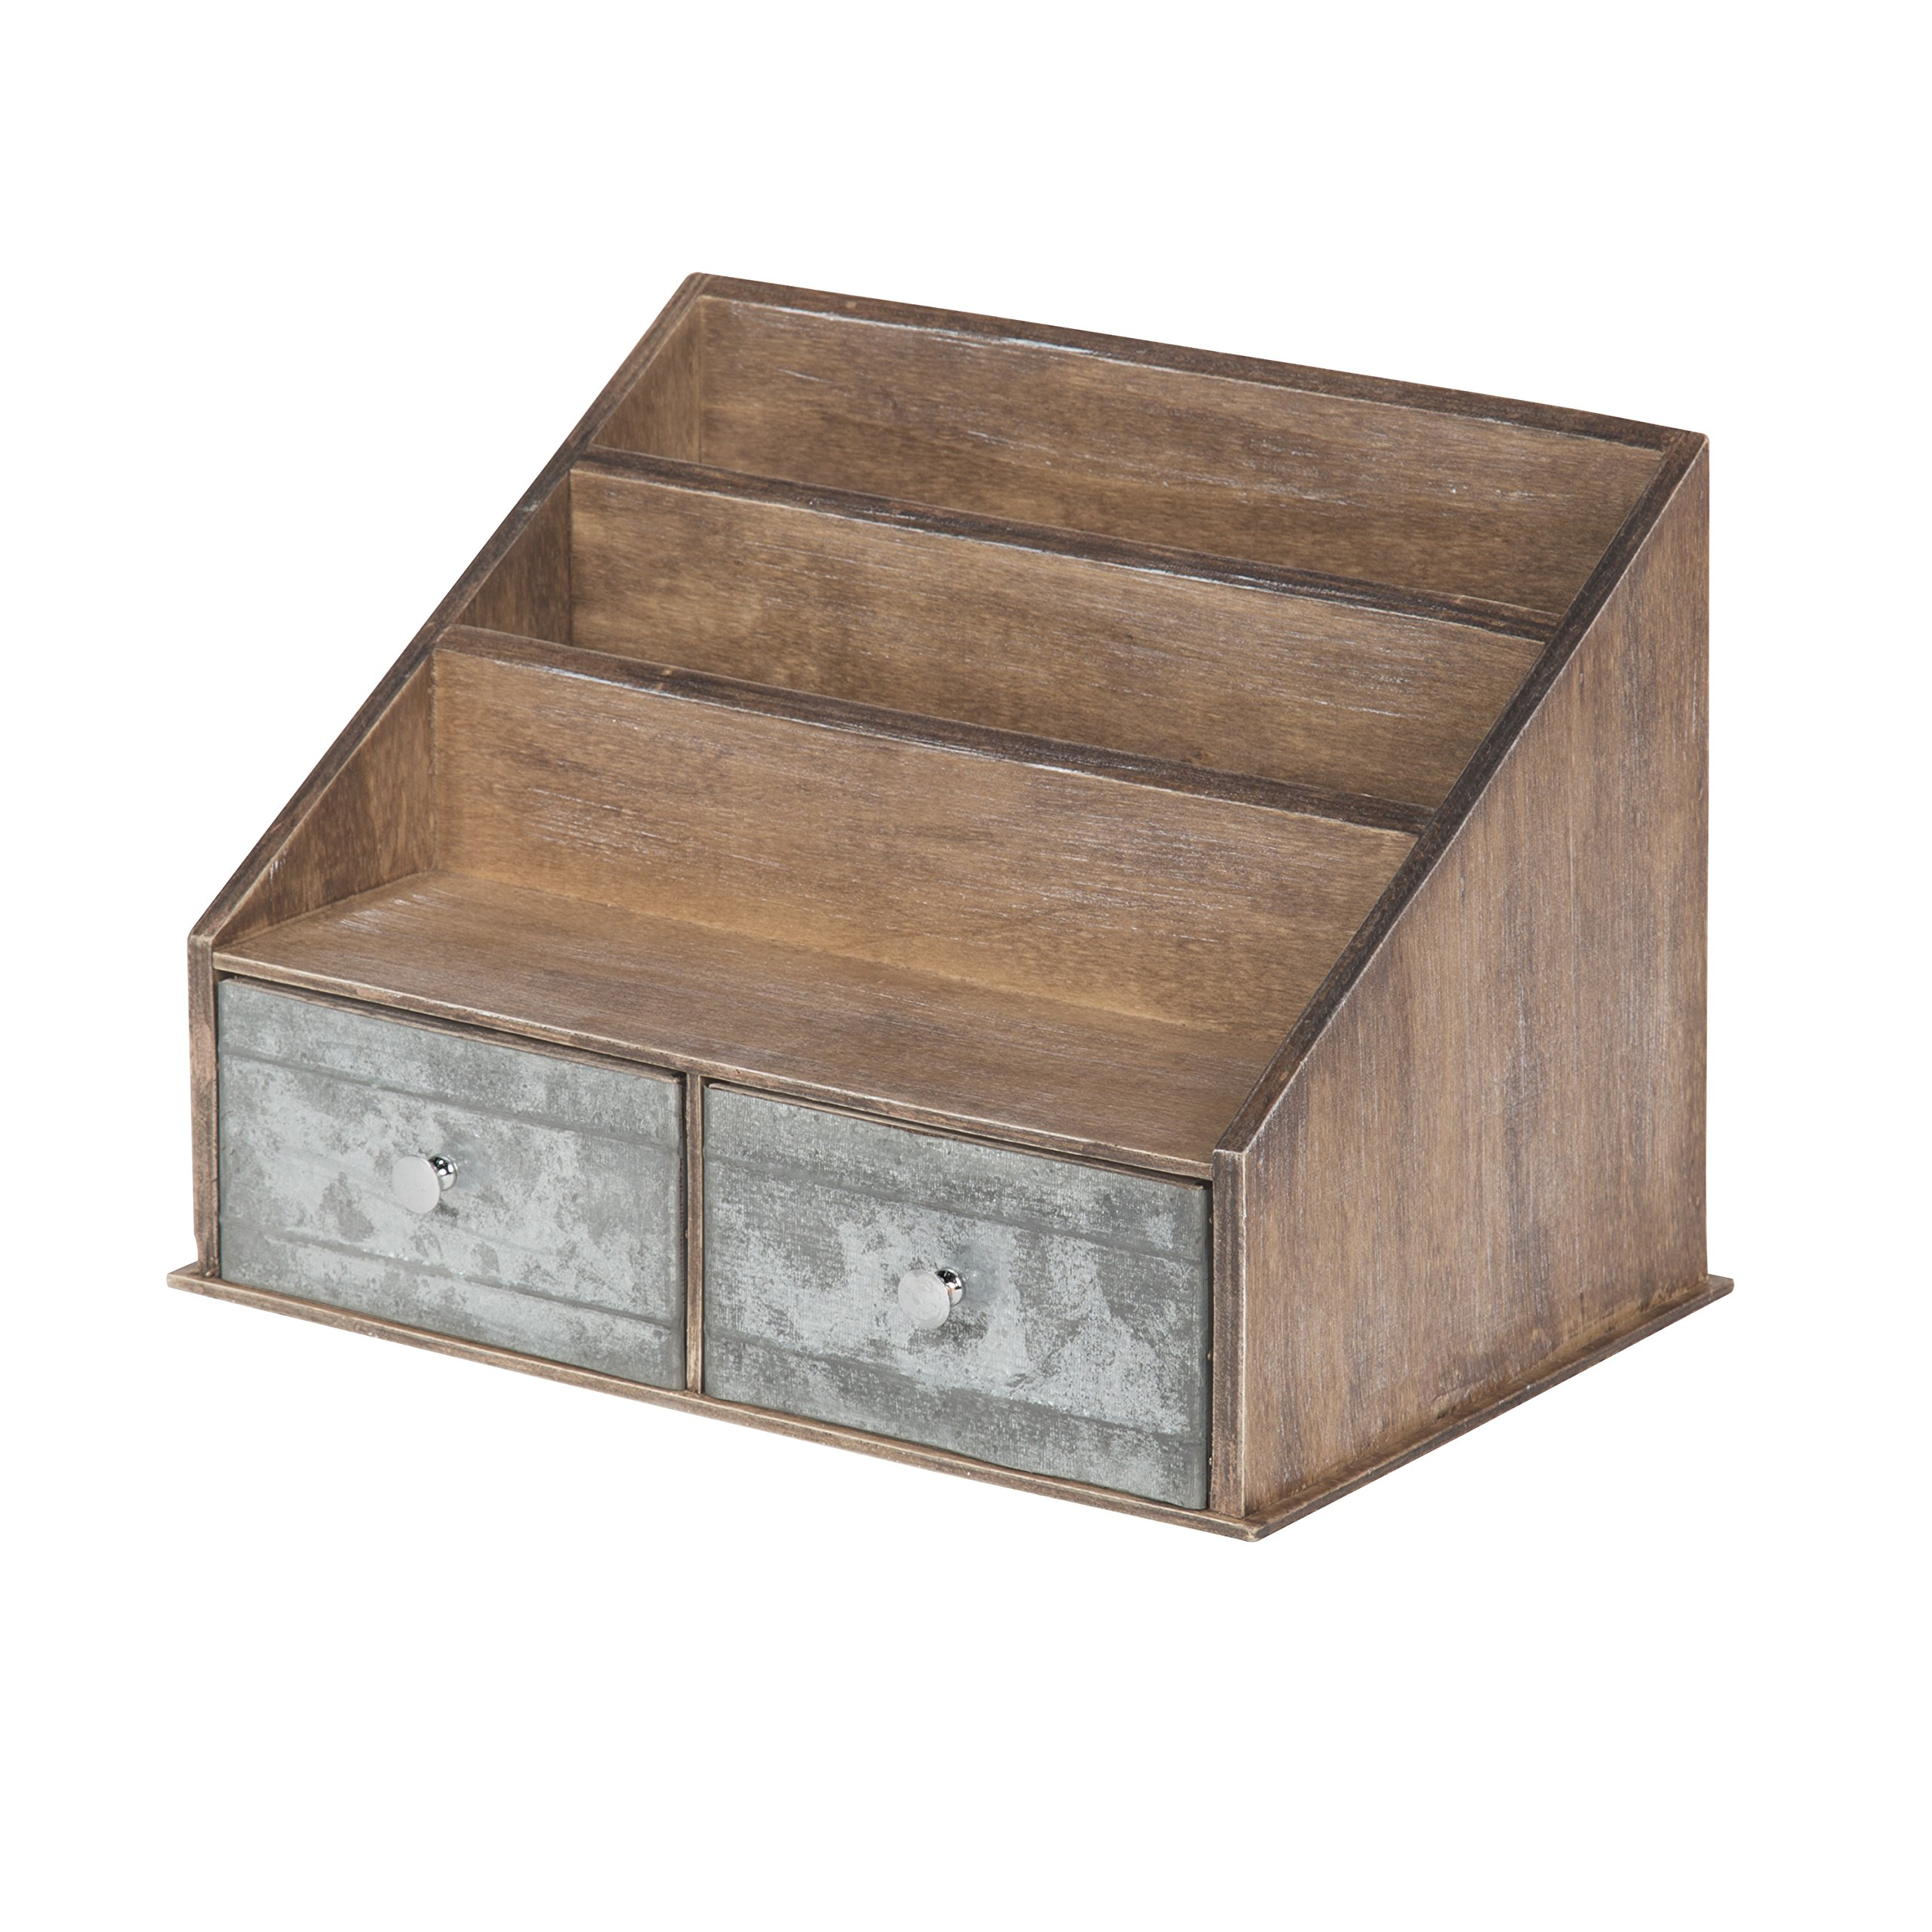 Kate and Laurel Industrious Desktop File Folder Organizer with 2 Pockets and 2 Drawers, Rustic Brown and Galvanized Metal by Kate and Laurel